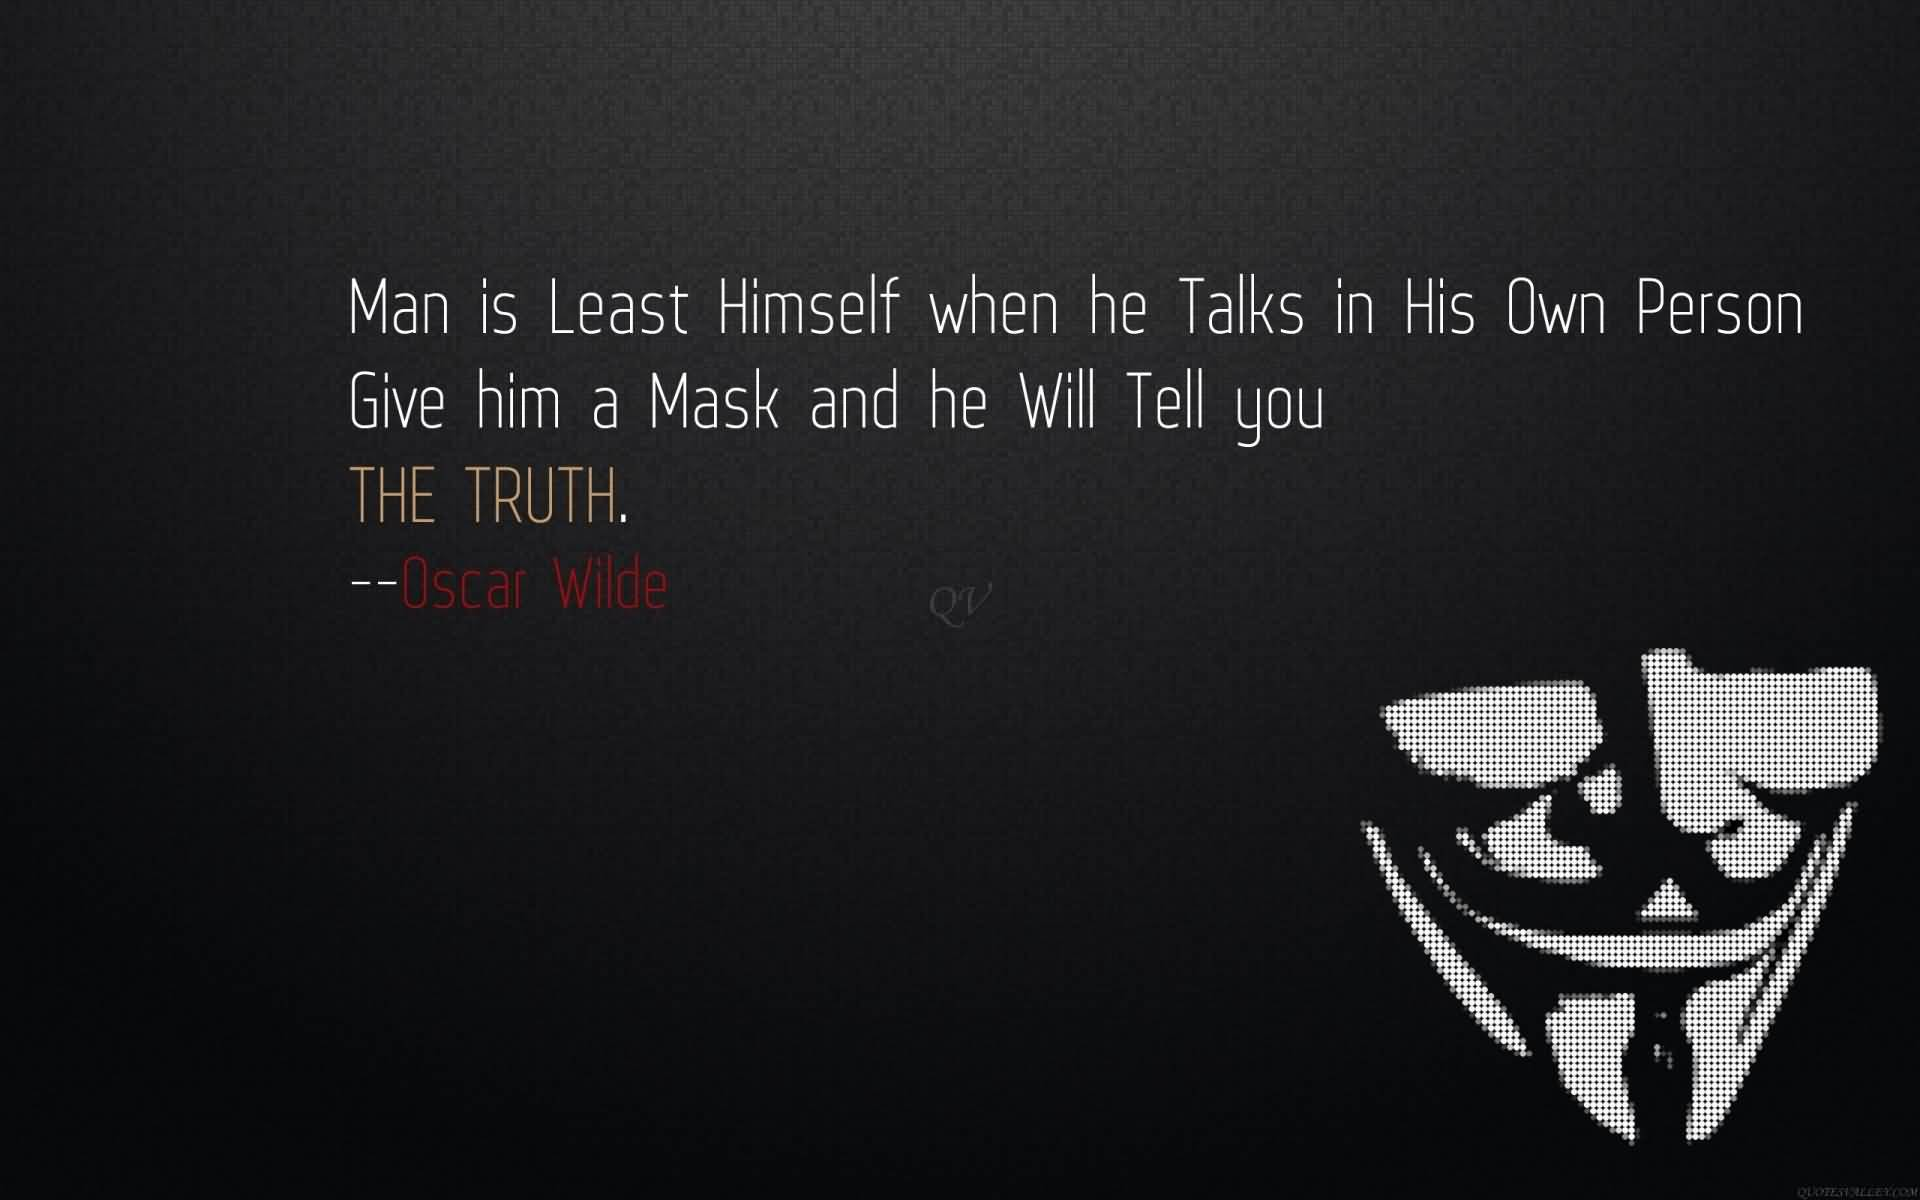 Give mask and tell truth